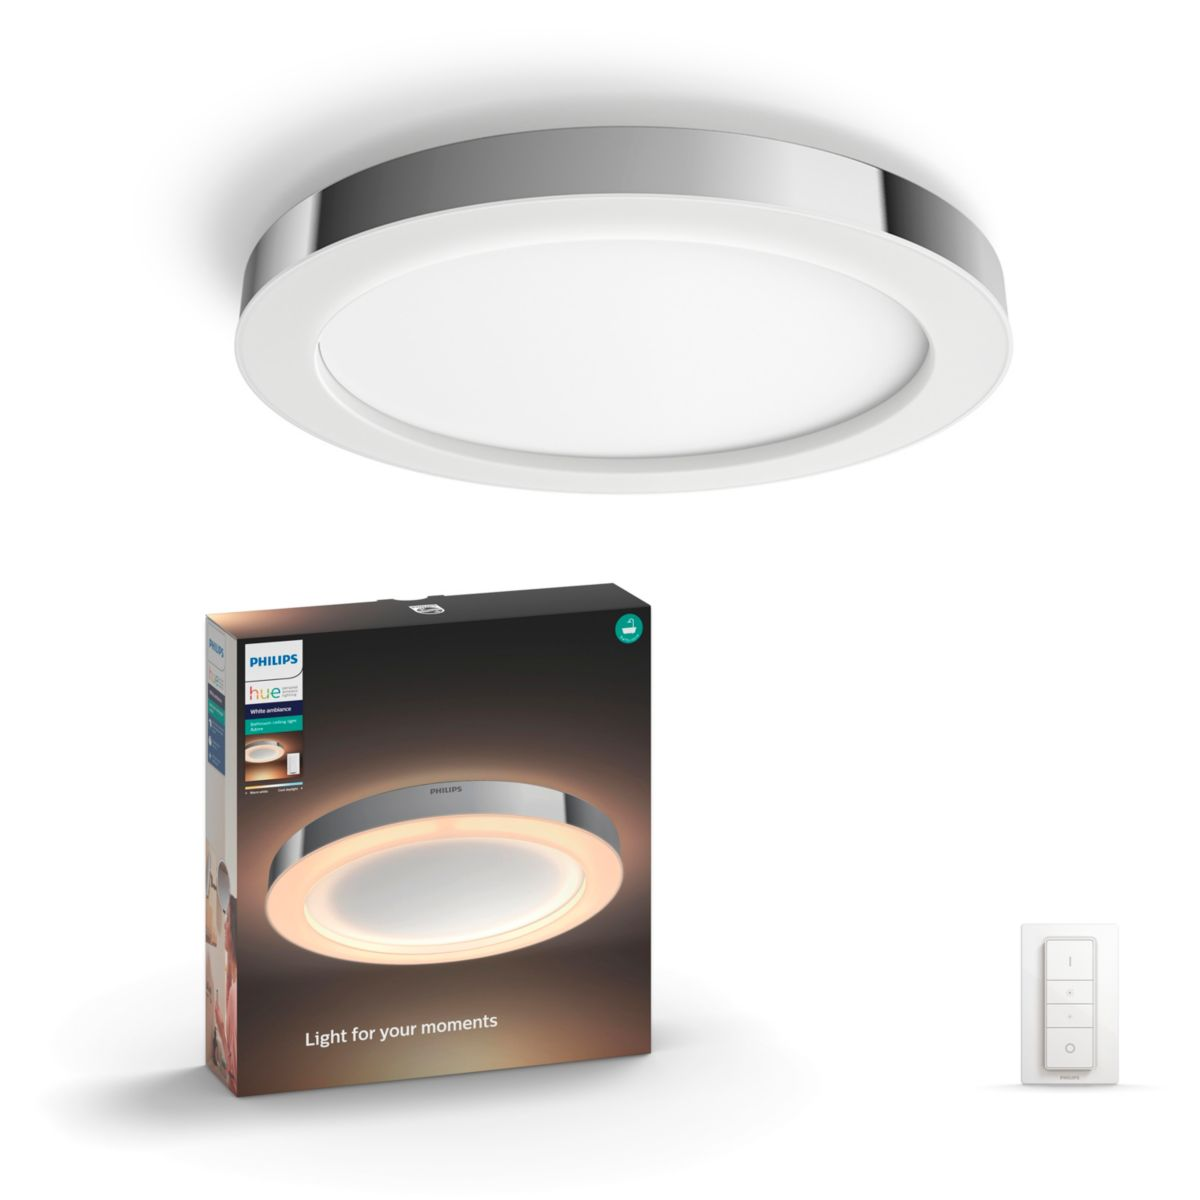 Hue White Ambiance Adore Bathroom Ceiling Light 3435011p7 Philips